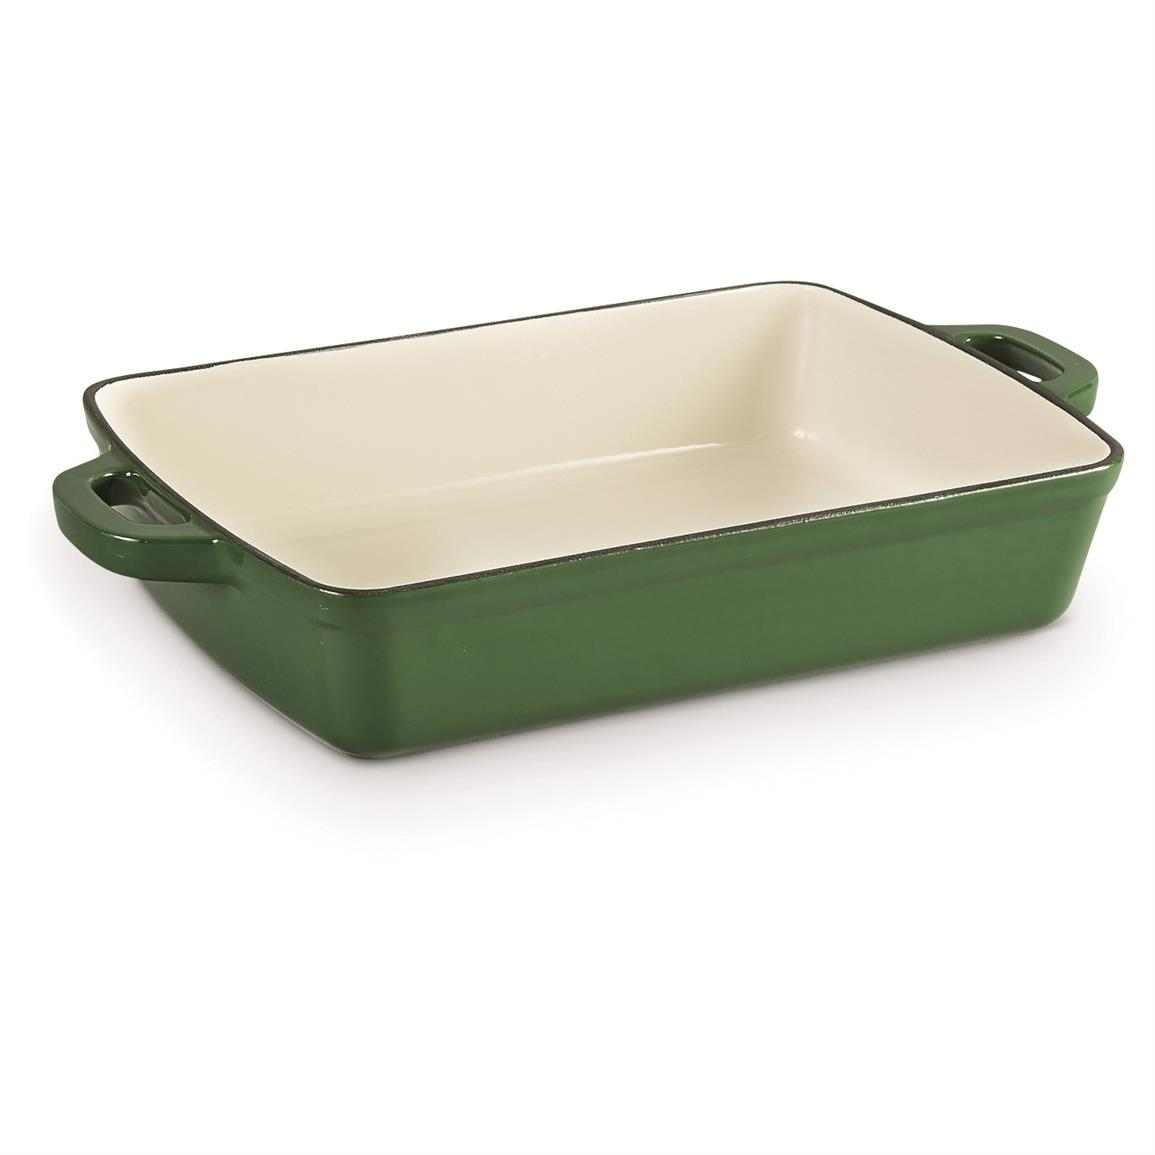 CASTLECREEK Enameled Cast Iron Baking Pan, Green